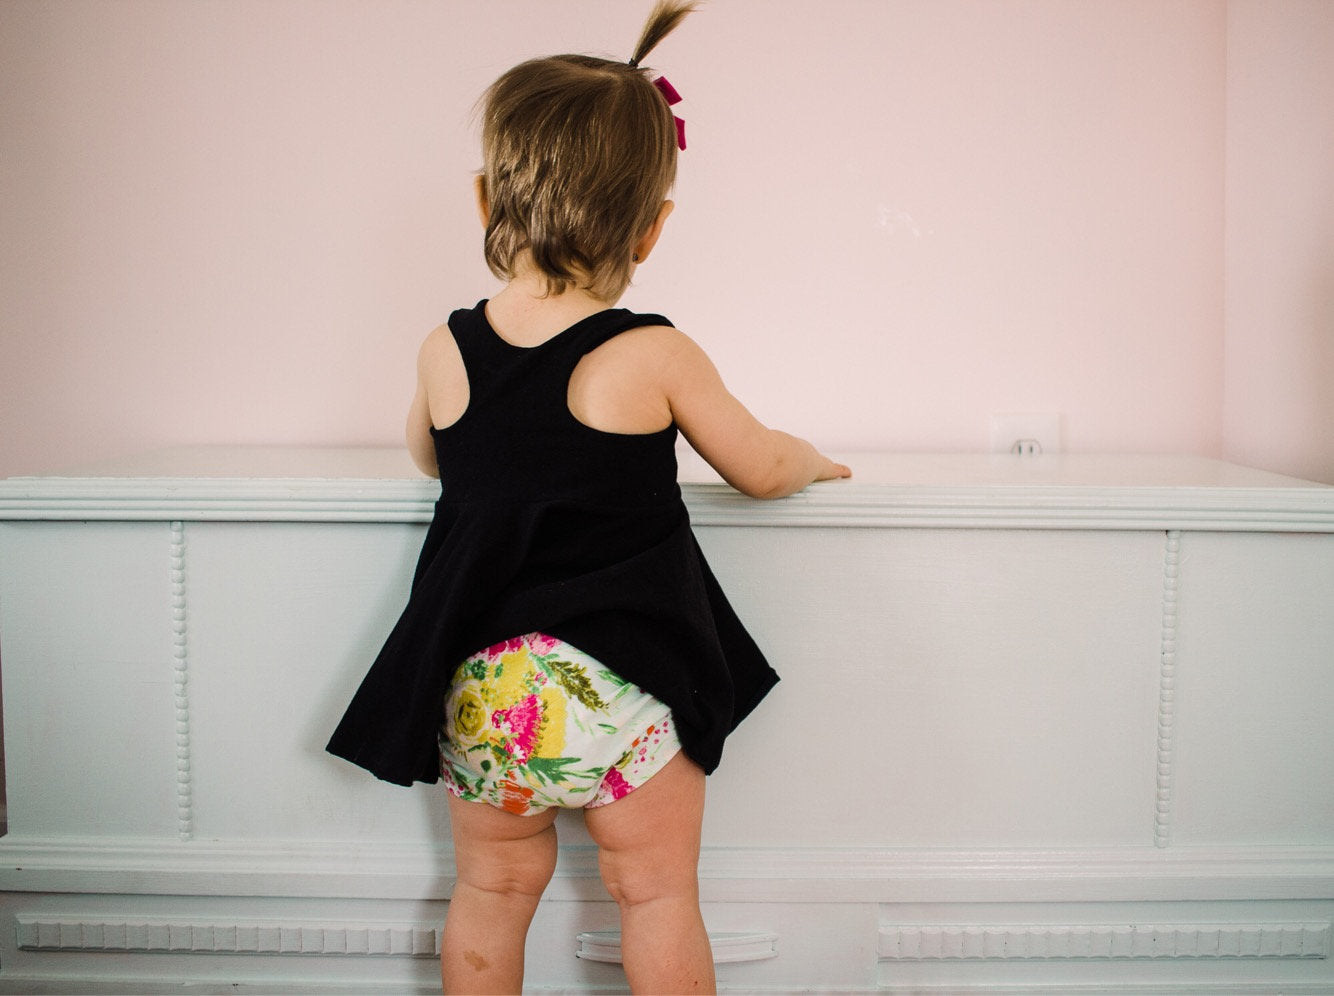 Mint Floral Bloomers - Girls Green, Pink, Yellow Toddler Shorties - Kids Shorts - Bummies Summer Handmade Stretchy Knit Easter Shorties